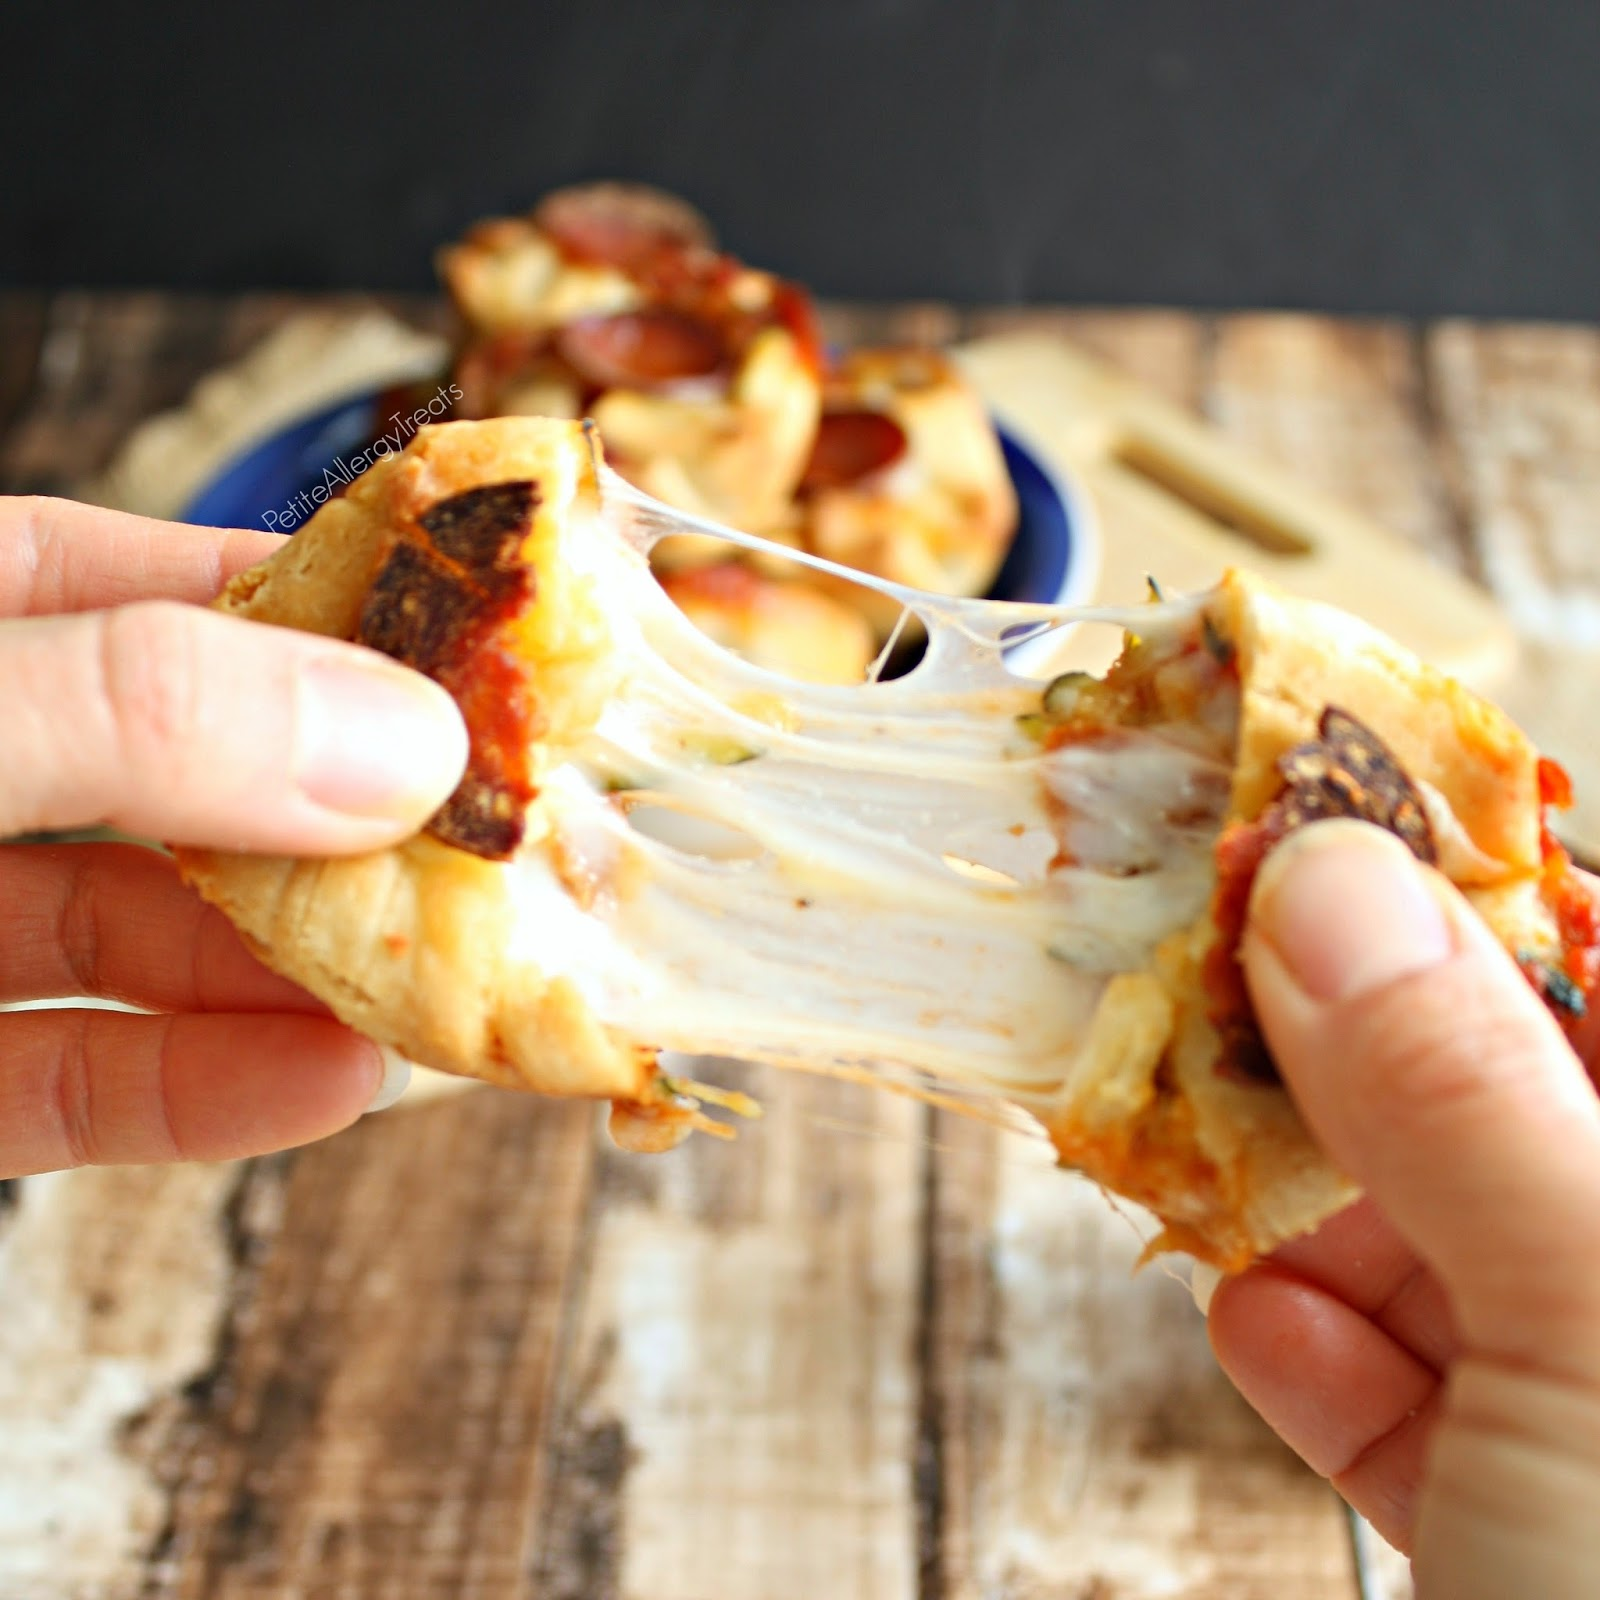 Pizza Bites (gluten free egg free)- Mini pizza pockets filled with gooey cheese and vegetables